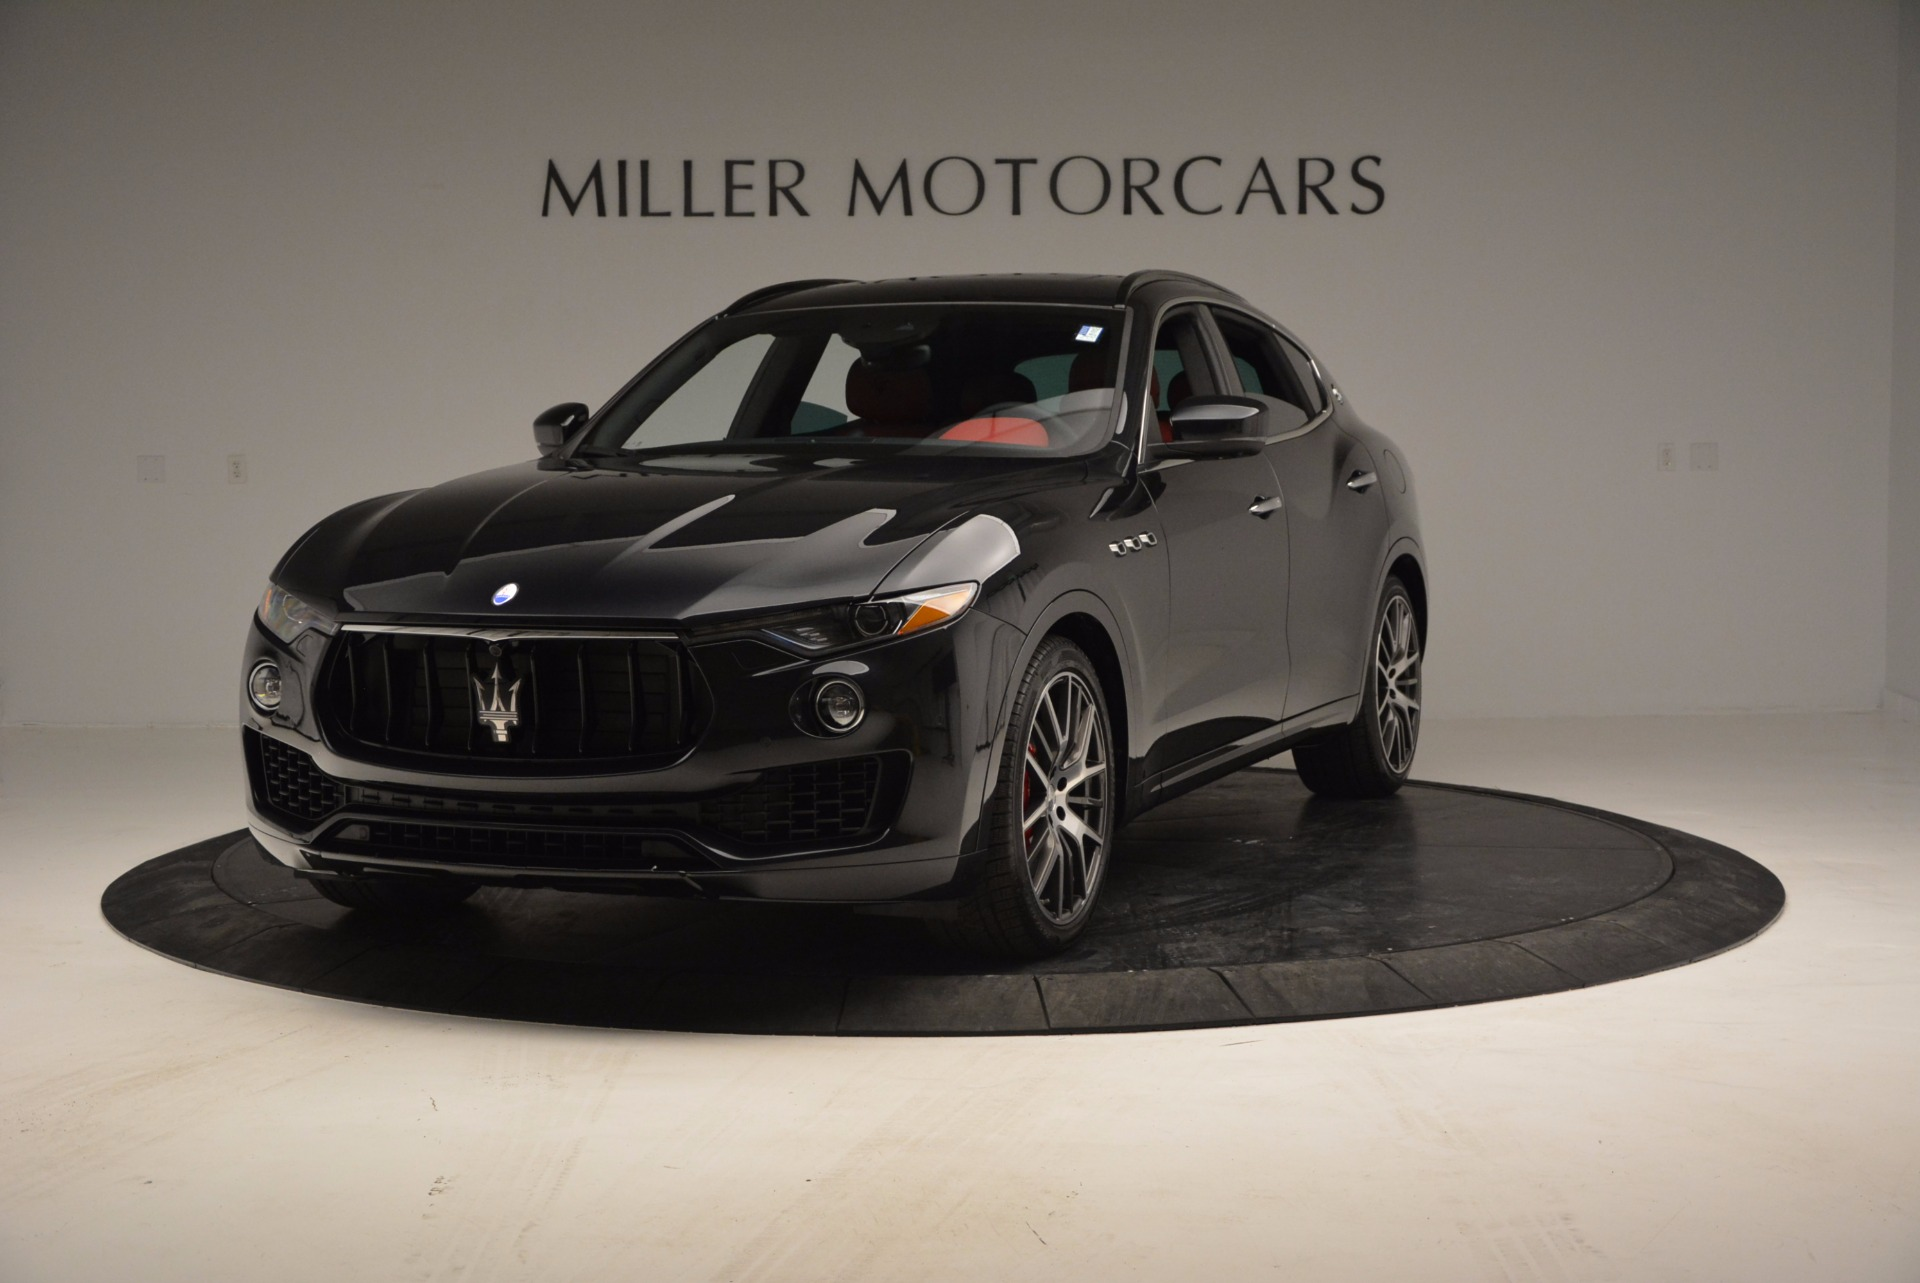 Used 2017 Maserati Levante S Q4 for sale Sold at Rolls-Royce Motor Cars Greenwich in Greenwich CT 06830 1